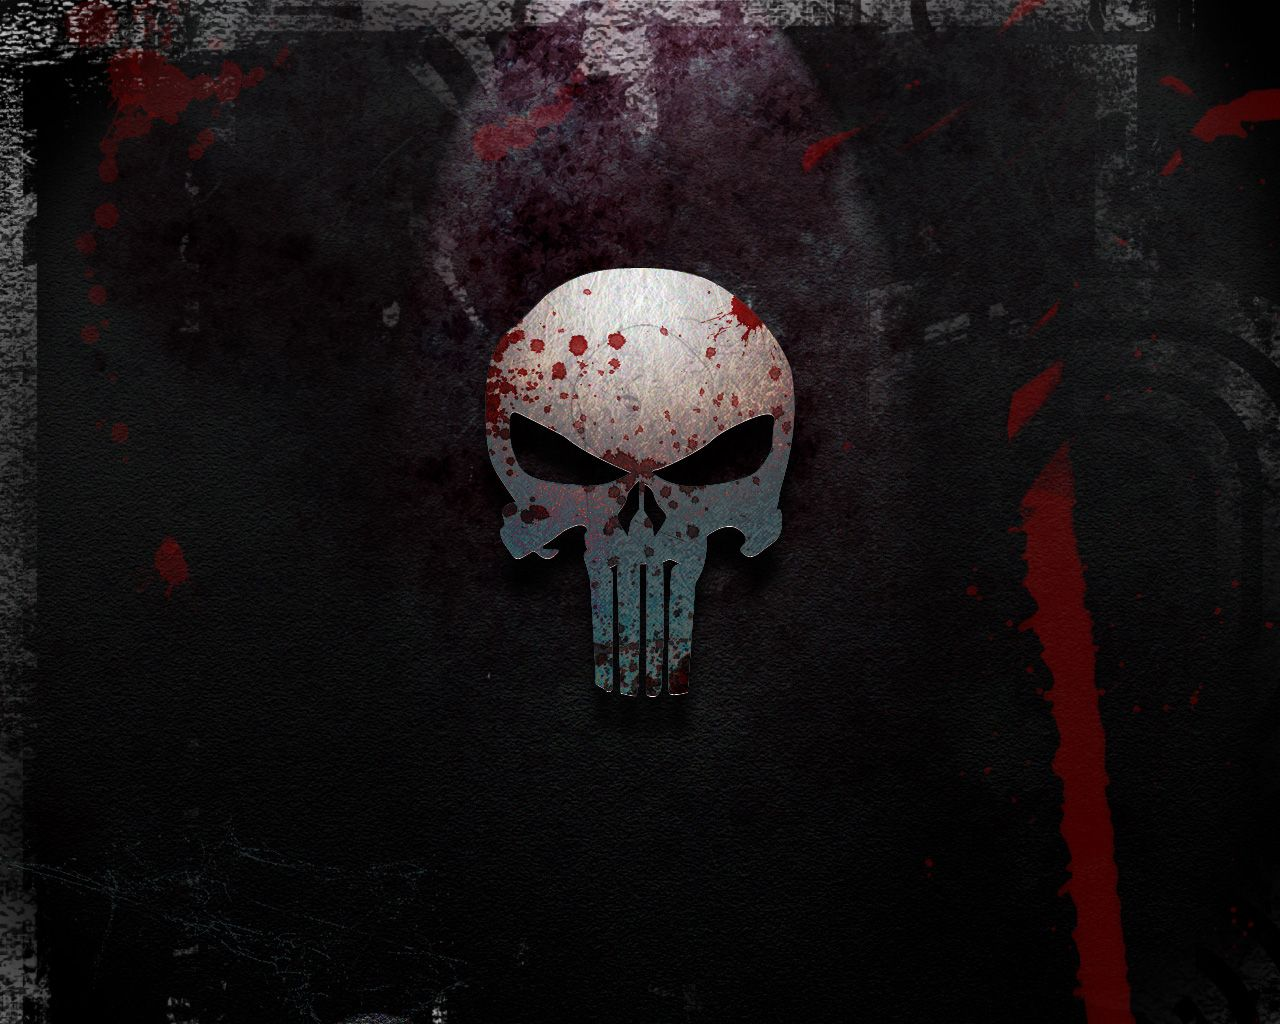 Punisher backgrounds 75 wallpapers hd wallpapers punisher the punisher computer wallpapers desktop backgrounds x hd voltagebd Images